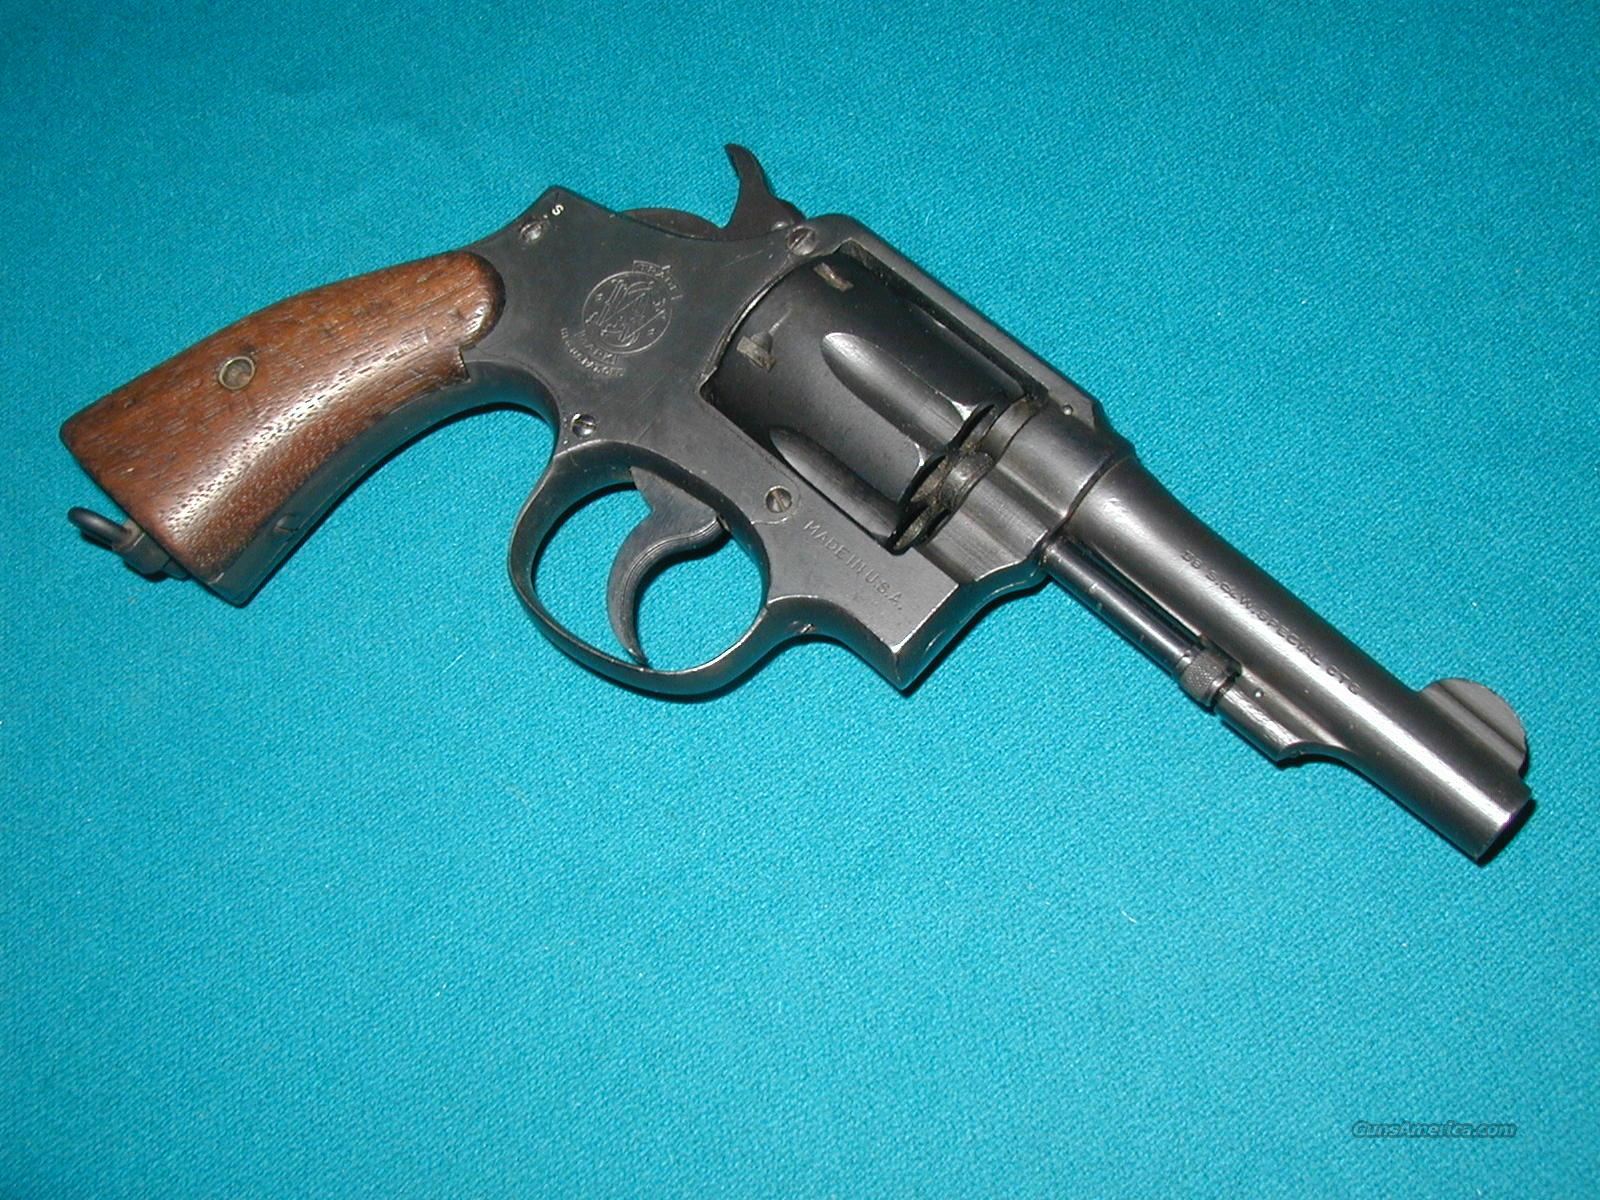 S&W WW2 U.S. NAVY VICTORY MODEL  Guns > Pistols > Smith & Wesson Revolvers > Pre-1945